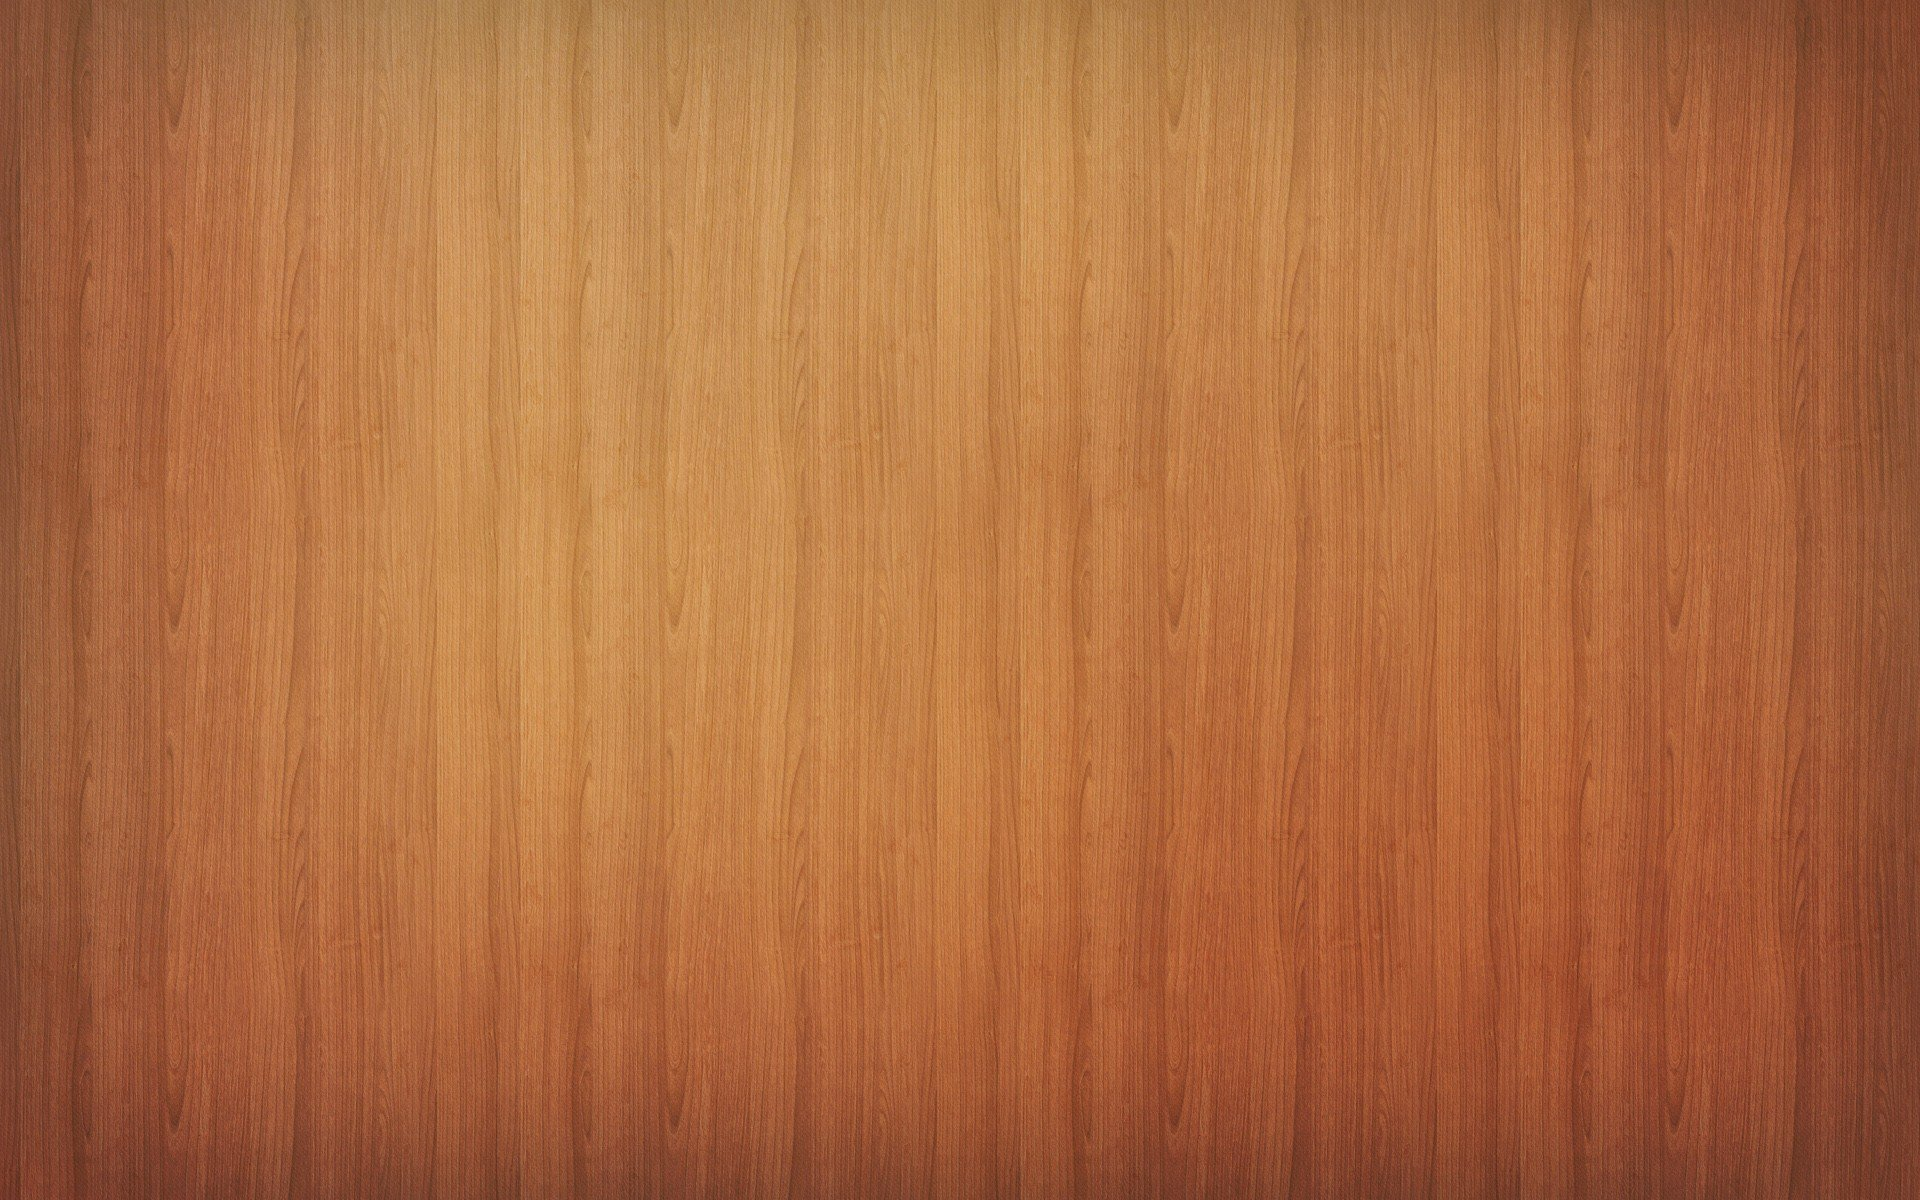 Minimalistic Wood Wallpaper 1920x1200 Minimalistic Wood 1920x1200